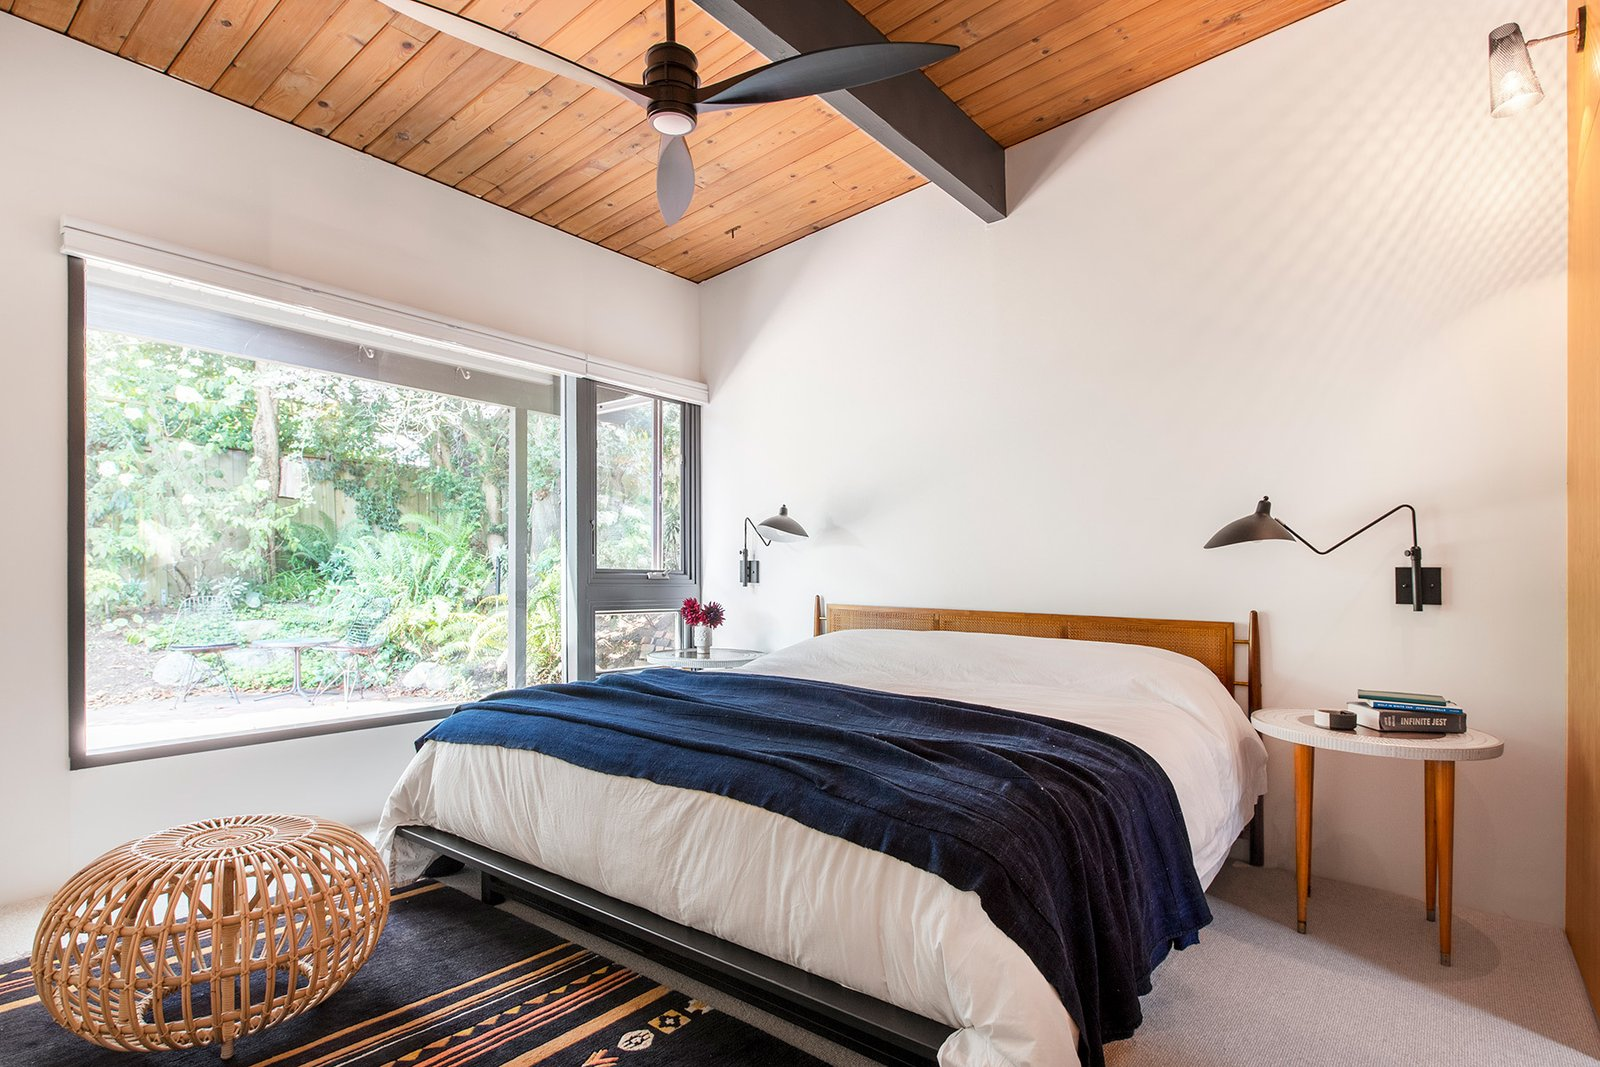 Bedroom, Bed, Night Stands, Wall, Rug, and Carpet The revamp also comprised of reworking the layout of the master suite. However, the windows and original wood ceilings were maintained for warmth and light.    Best Bedroom Bed Rug Carpet Photos from Hillside Midcentury